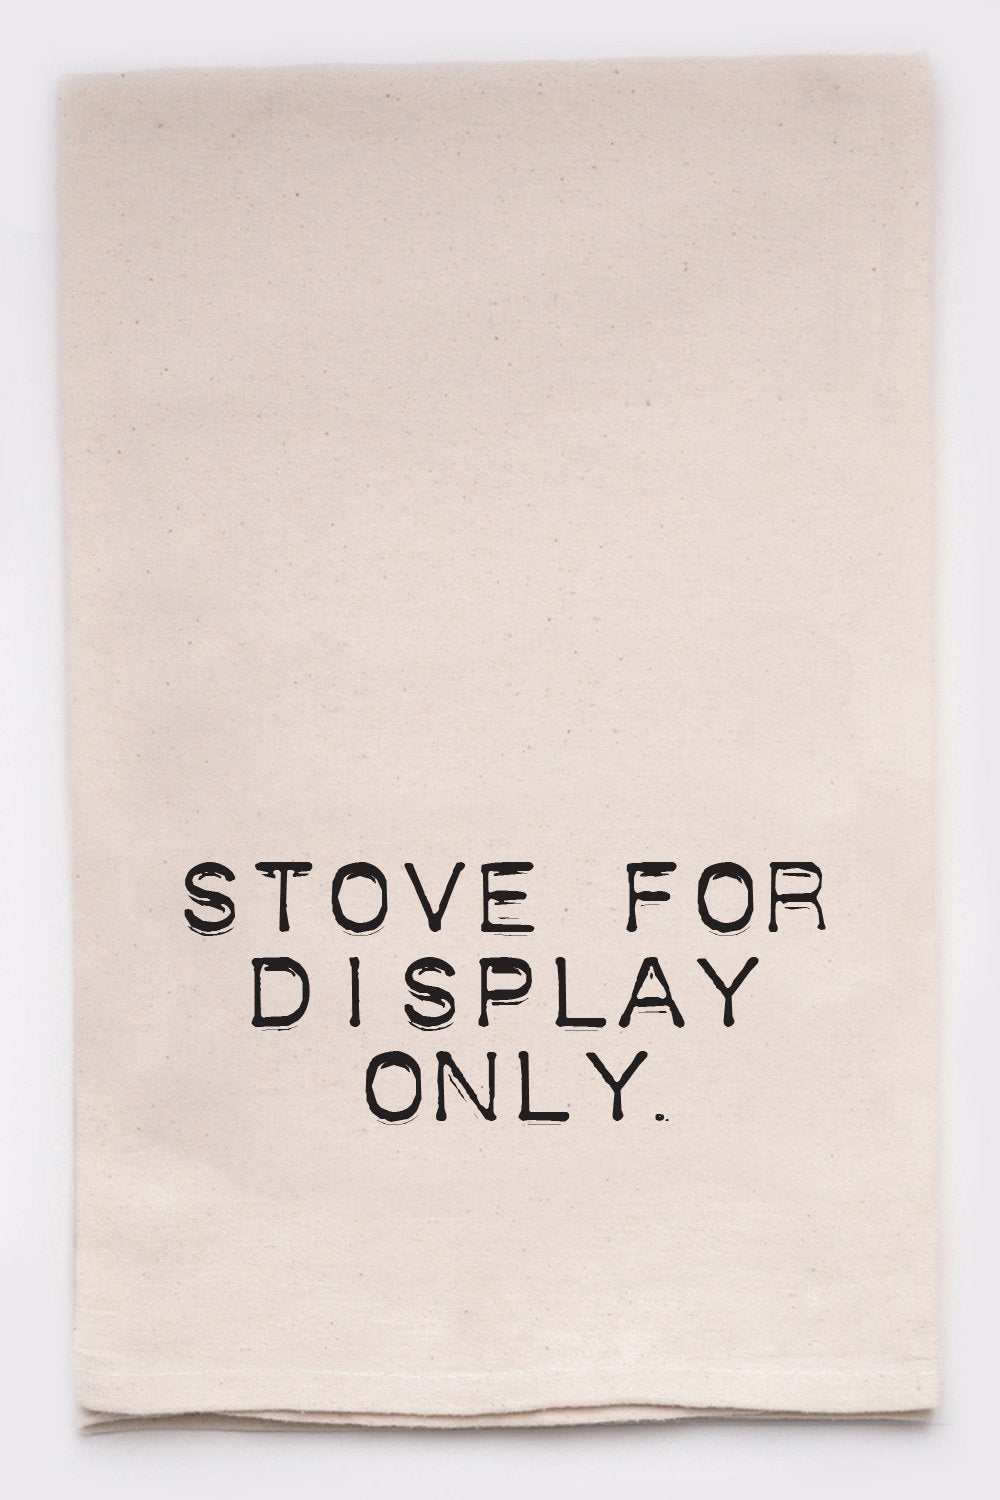 Stove for display only dish towel